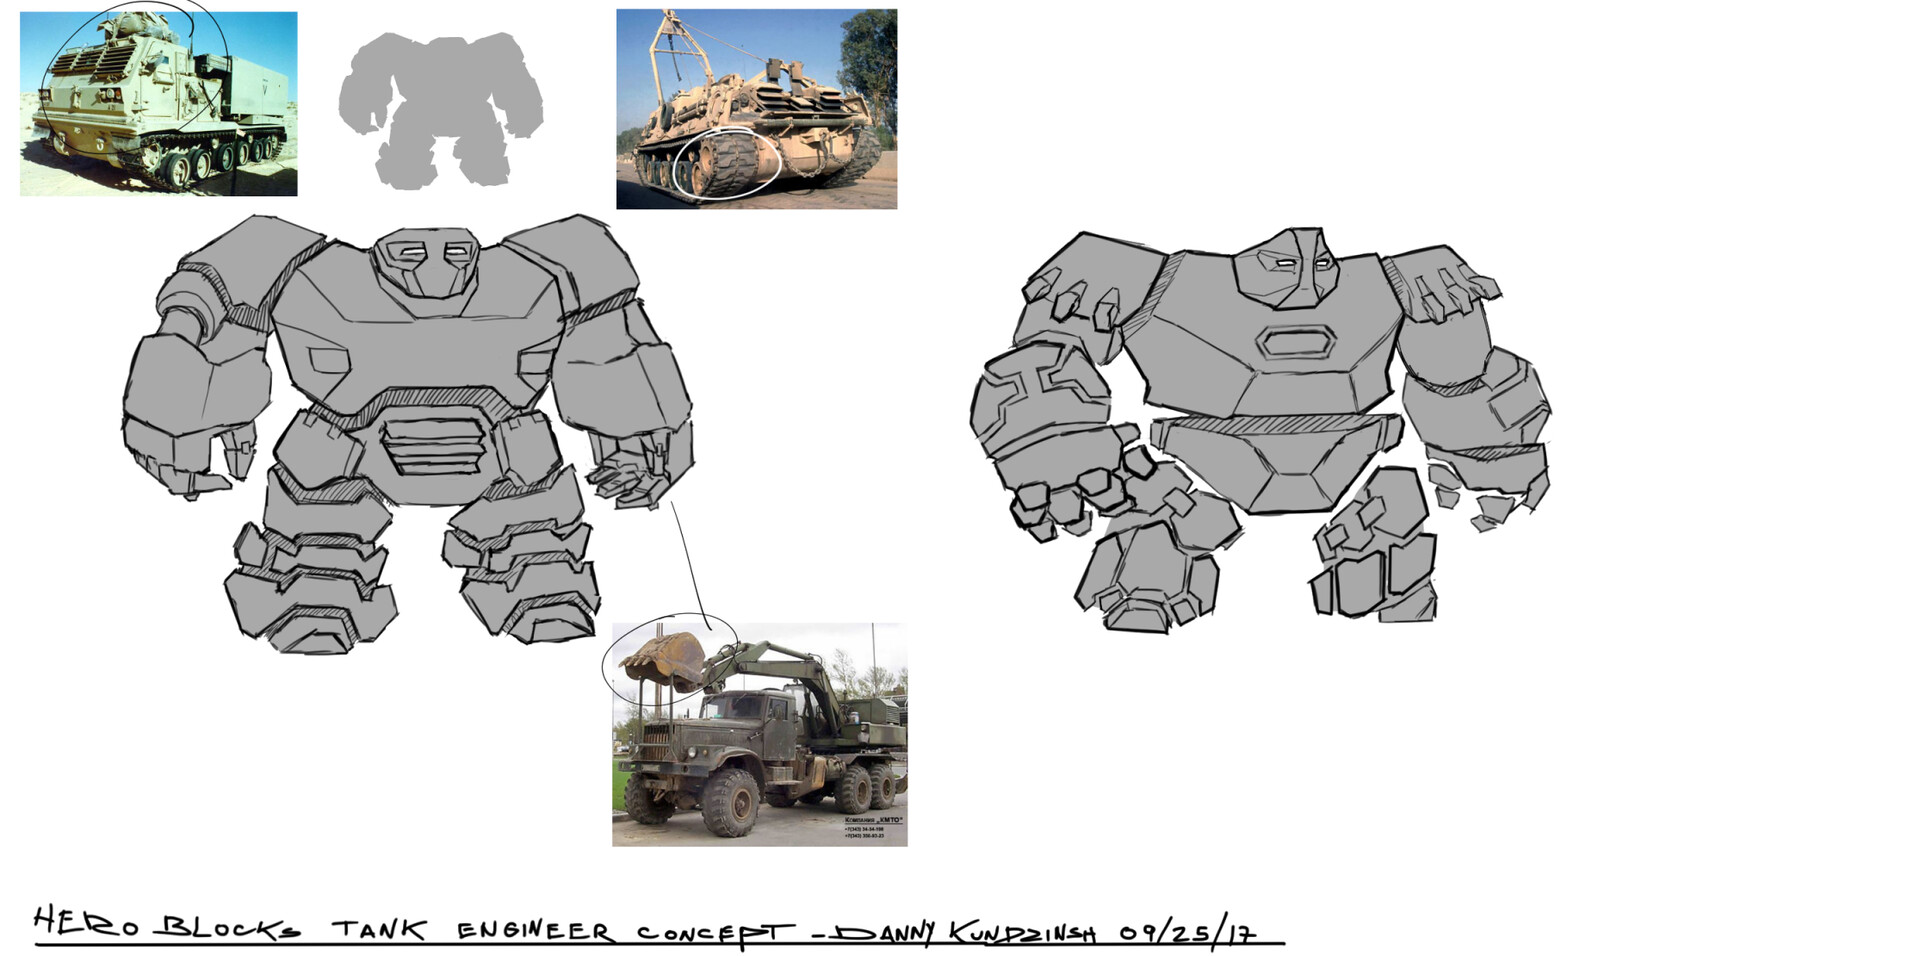 Danny kundzinsh hero blocks tank engineer concept2